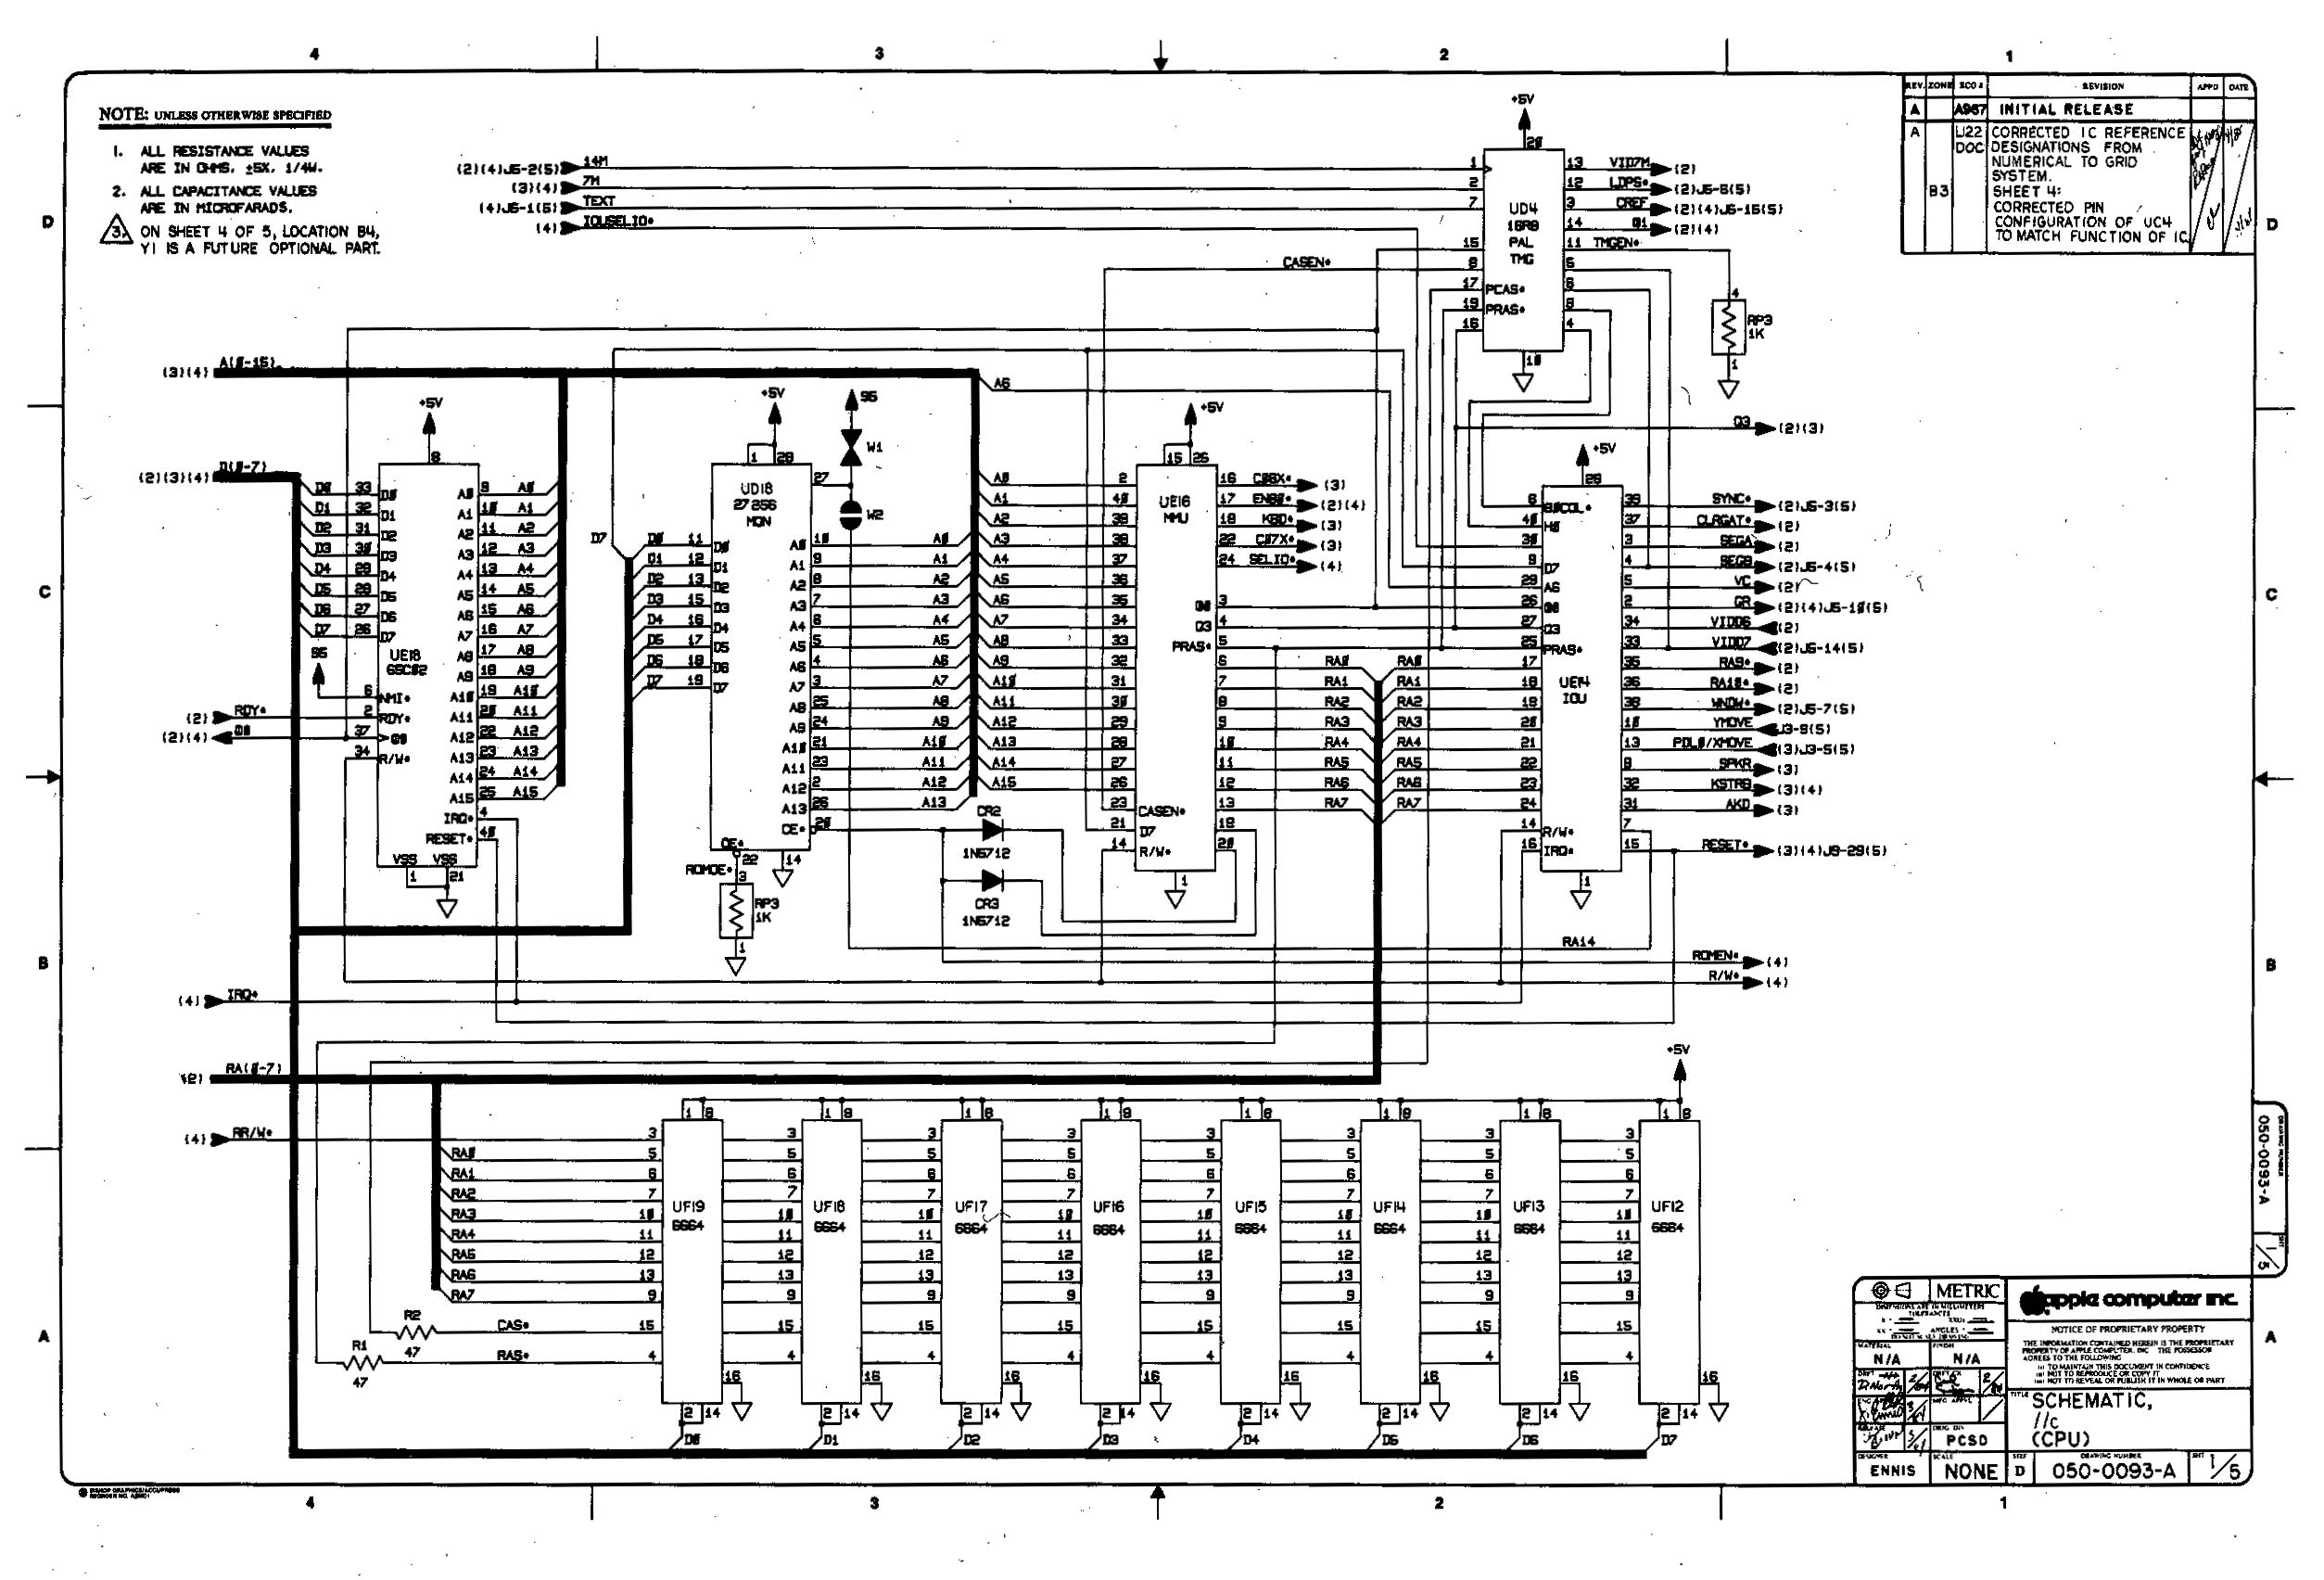 A1181 Macbook Wiring Diagram : 28 Wiring Diagram Images